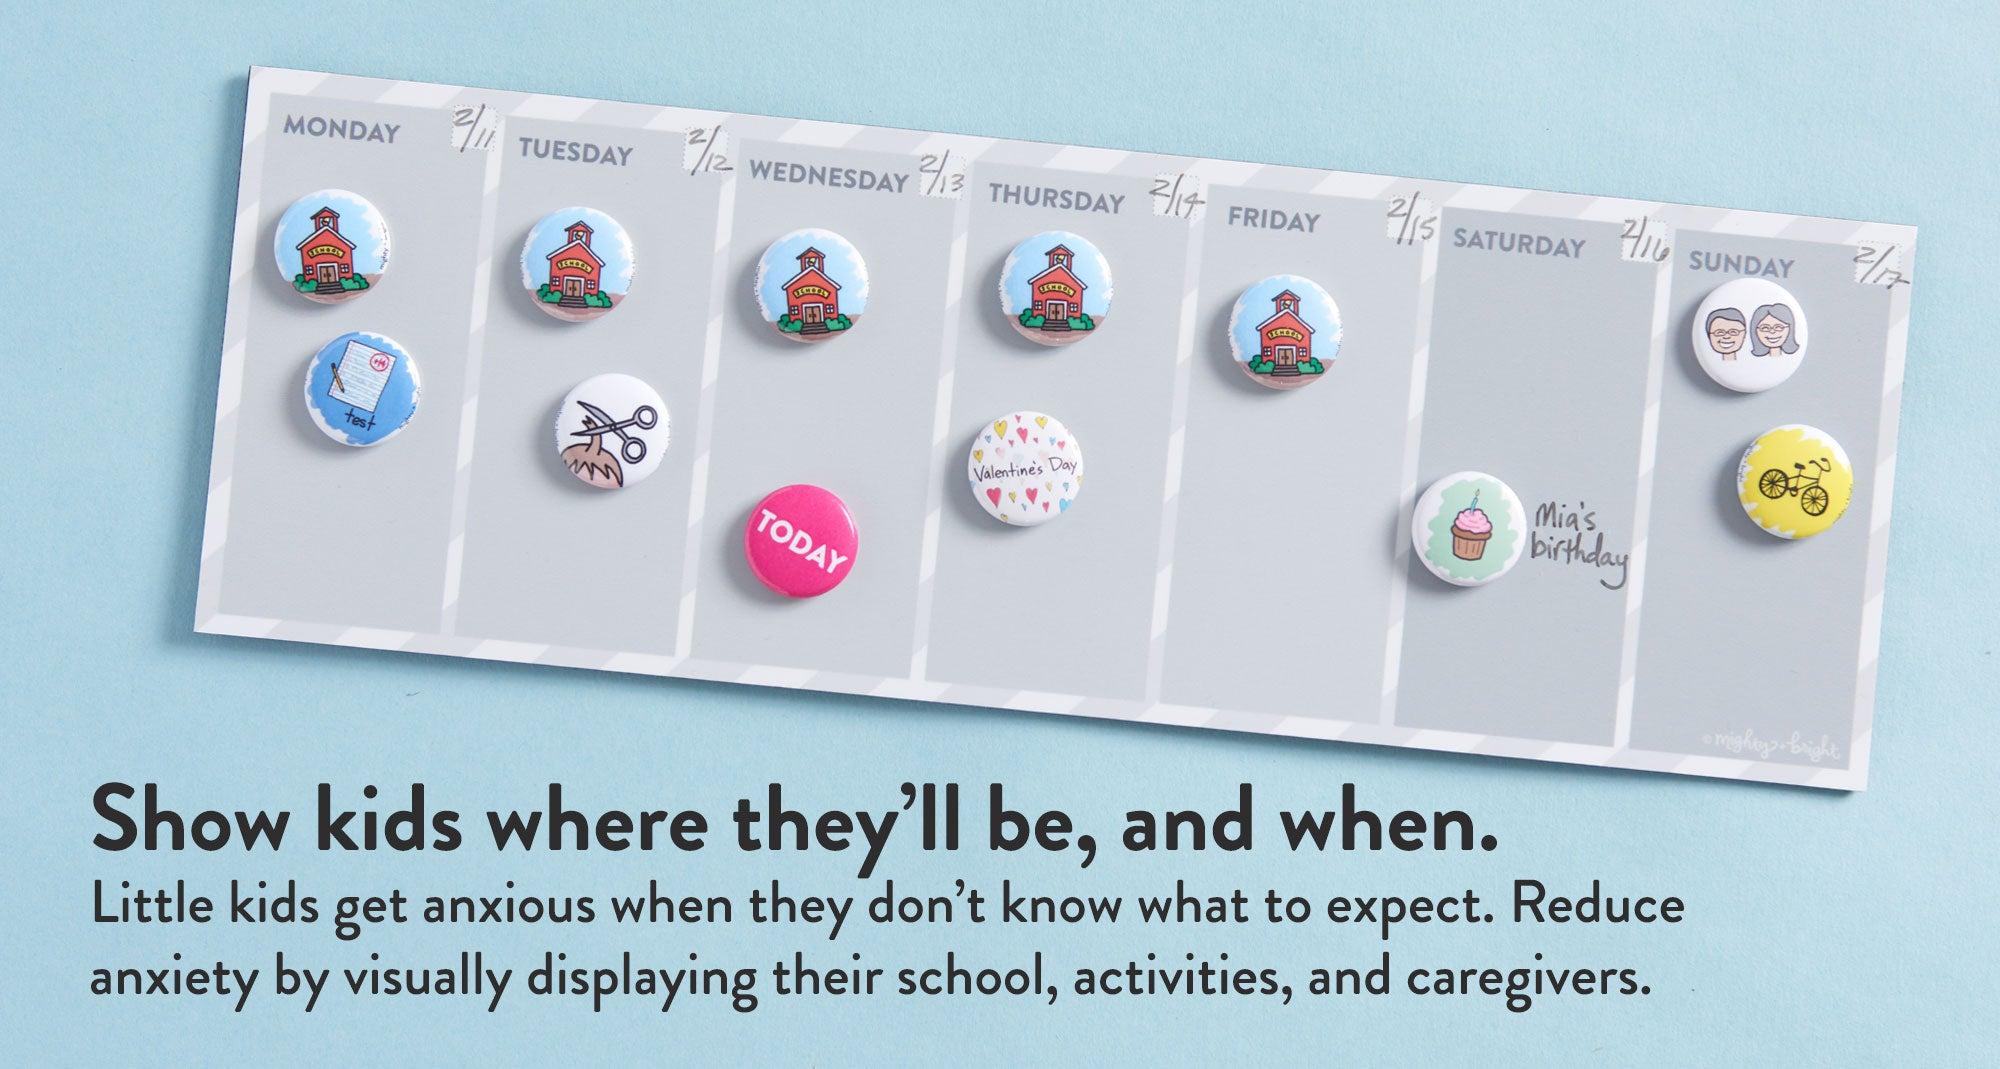 Show kids where they'll be, and when. Little kids get anxious when they don't know what to expect. Reduce anxiety by visually displaying their school, activities, and caregivers.